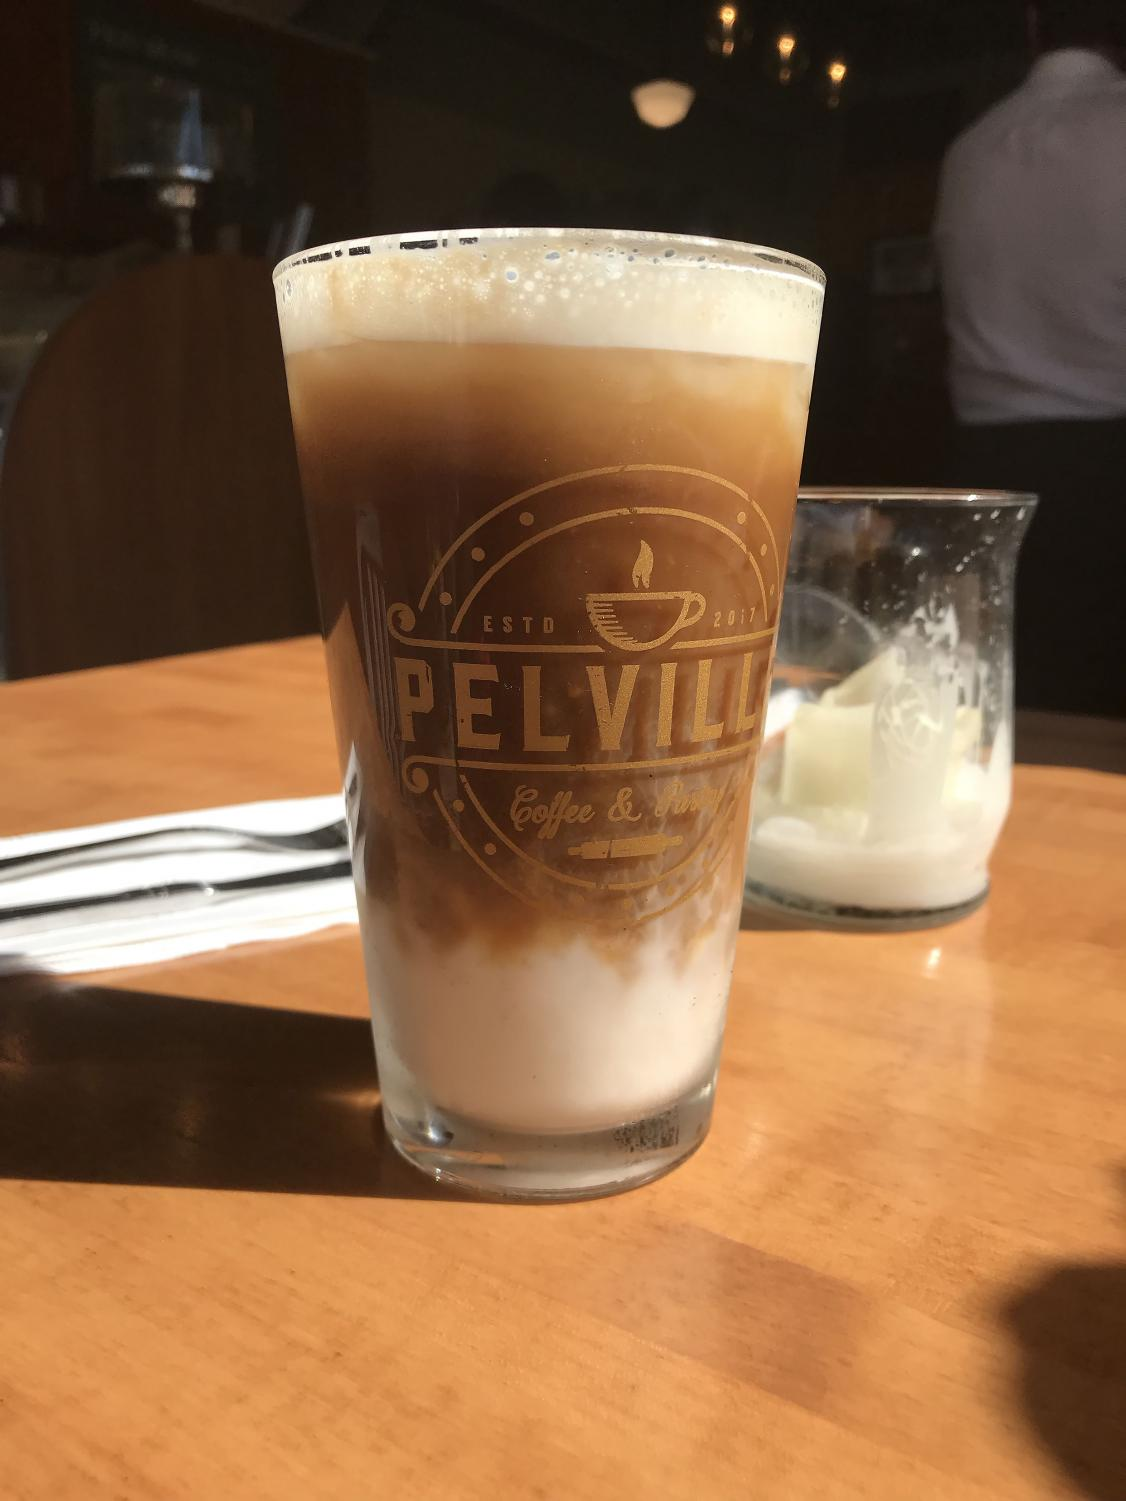 Pelville is the community's newest coffee hub.